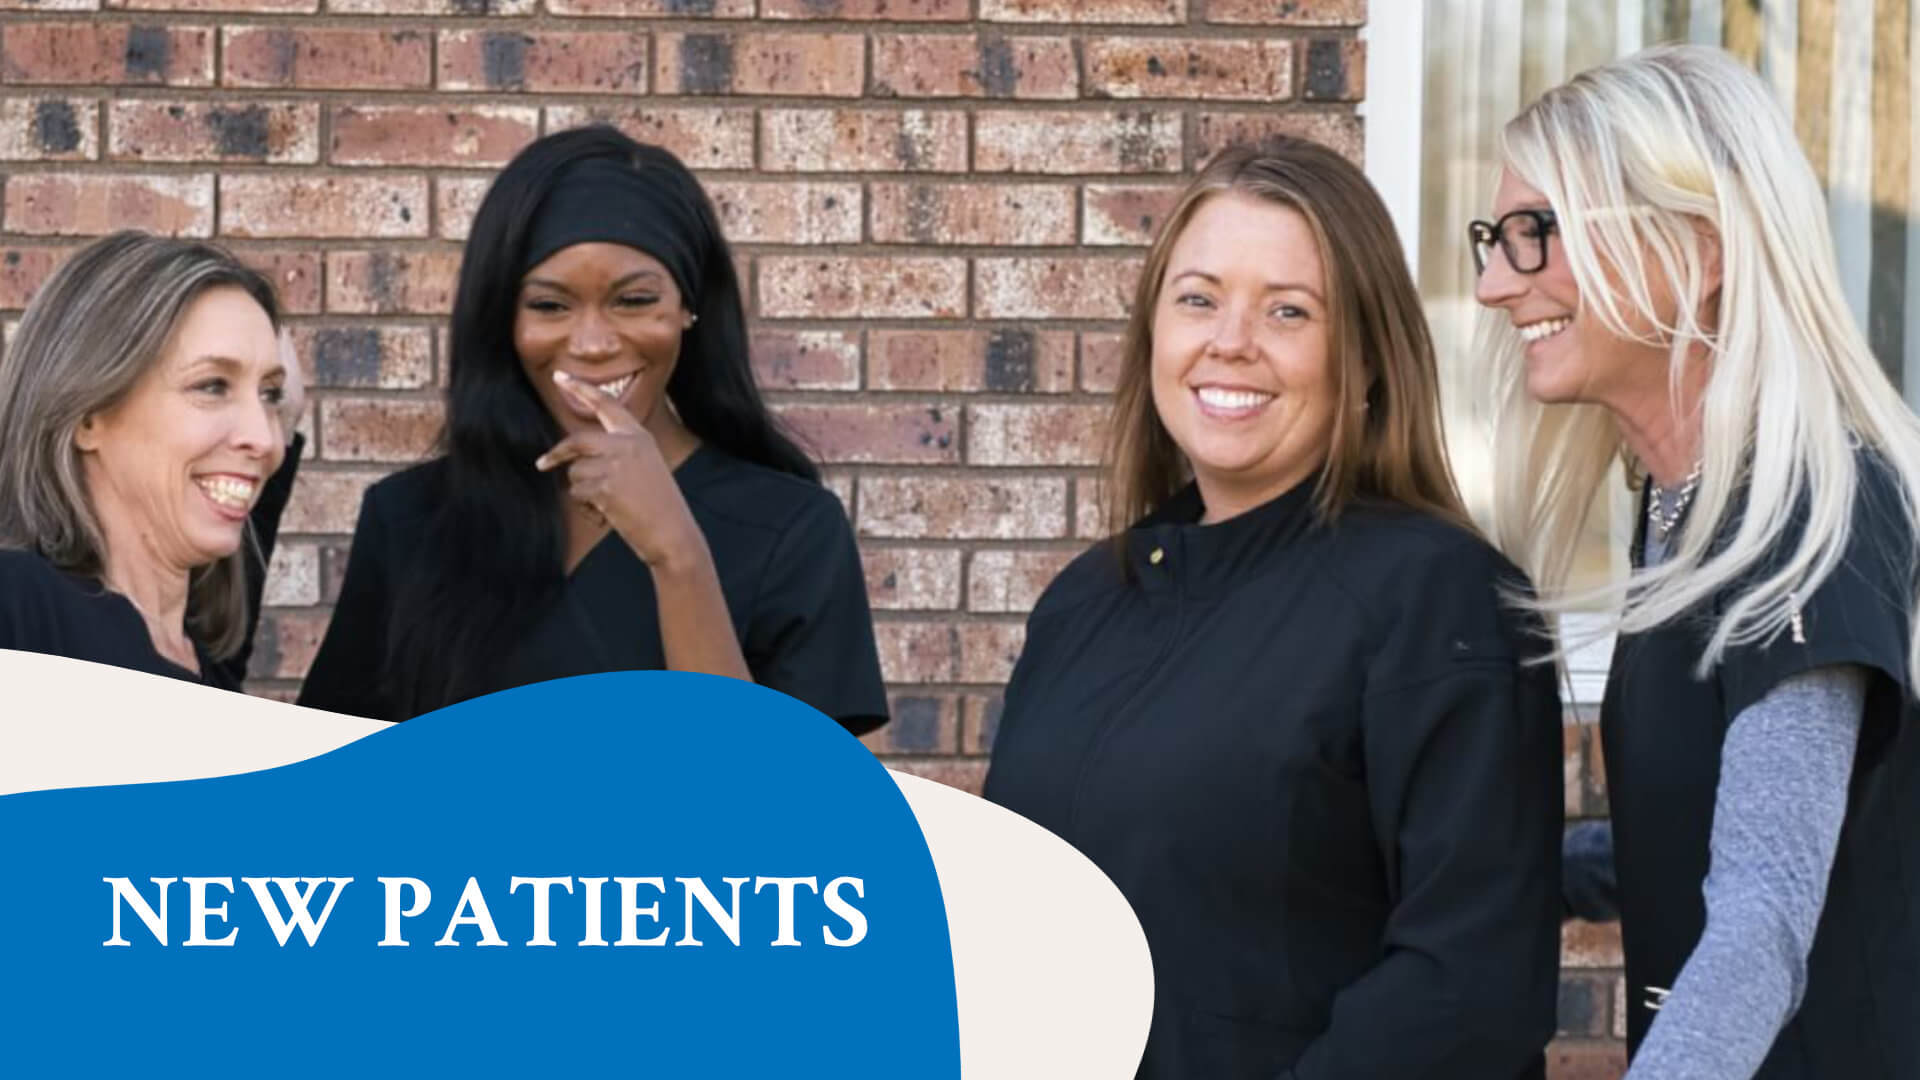 The Town & Country Dentistry team greeting patients.